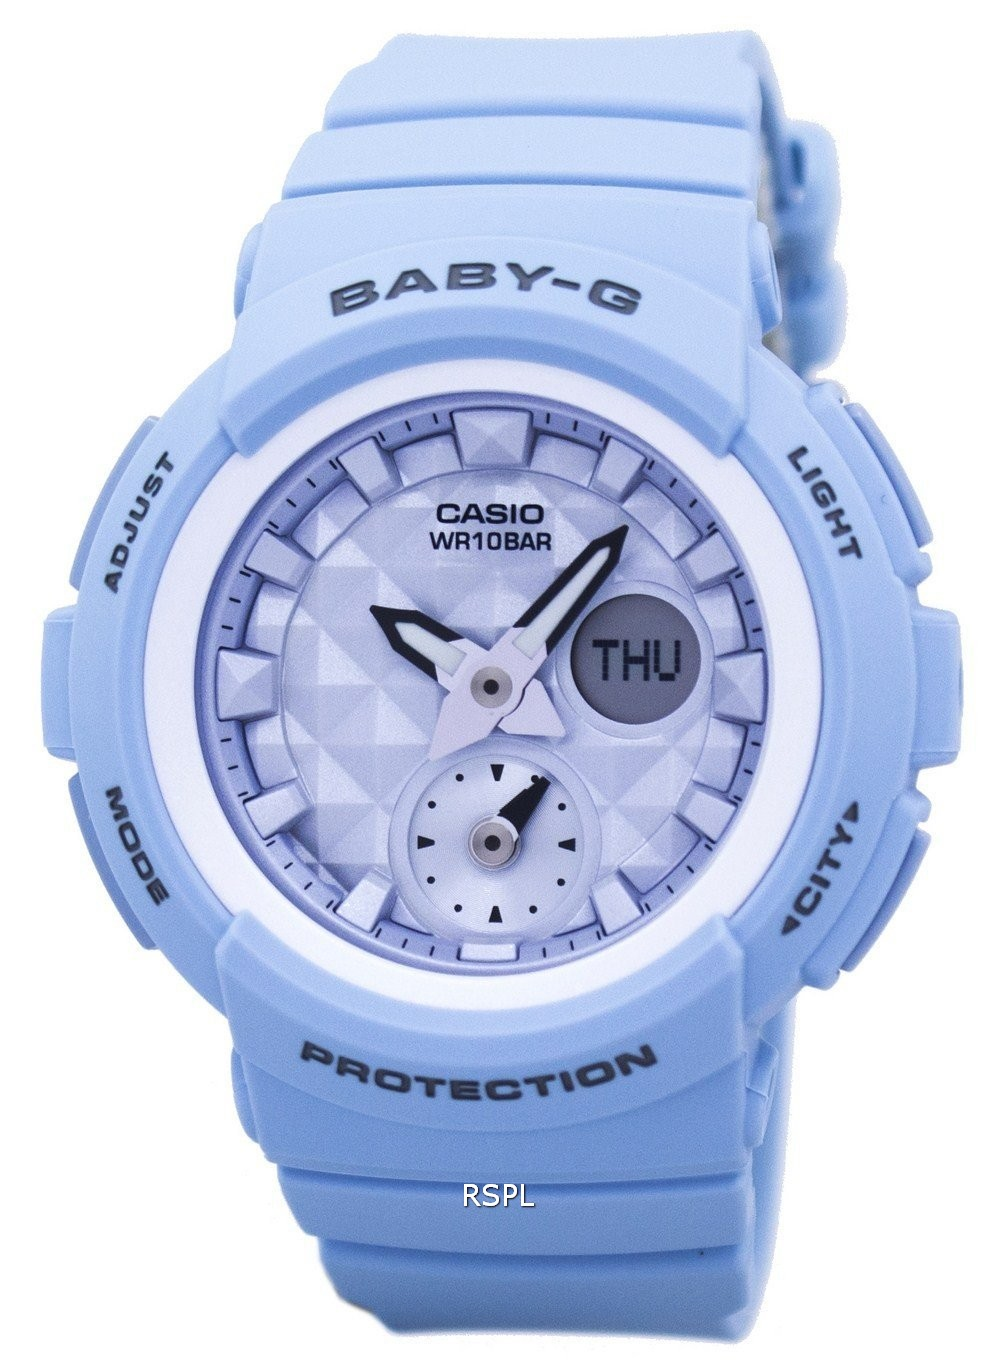 af6ab5ff5e9 Casio Baby-G Shock Resistant World Time Analog Digital BGA-190BE-2A Women s  Watch